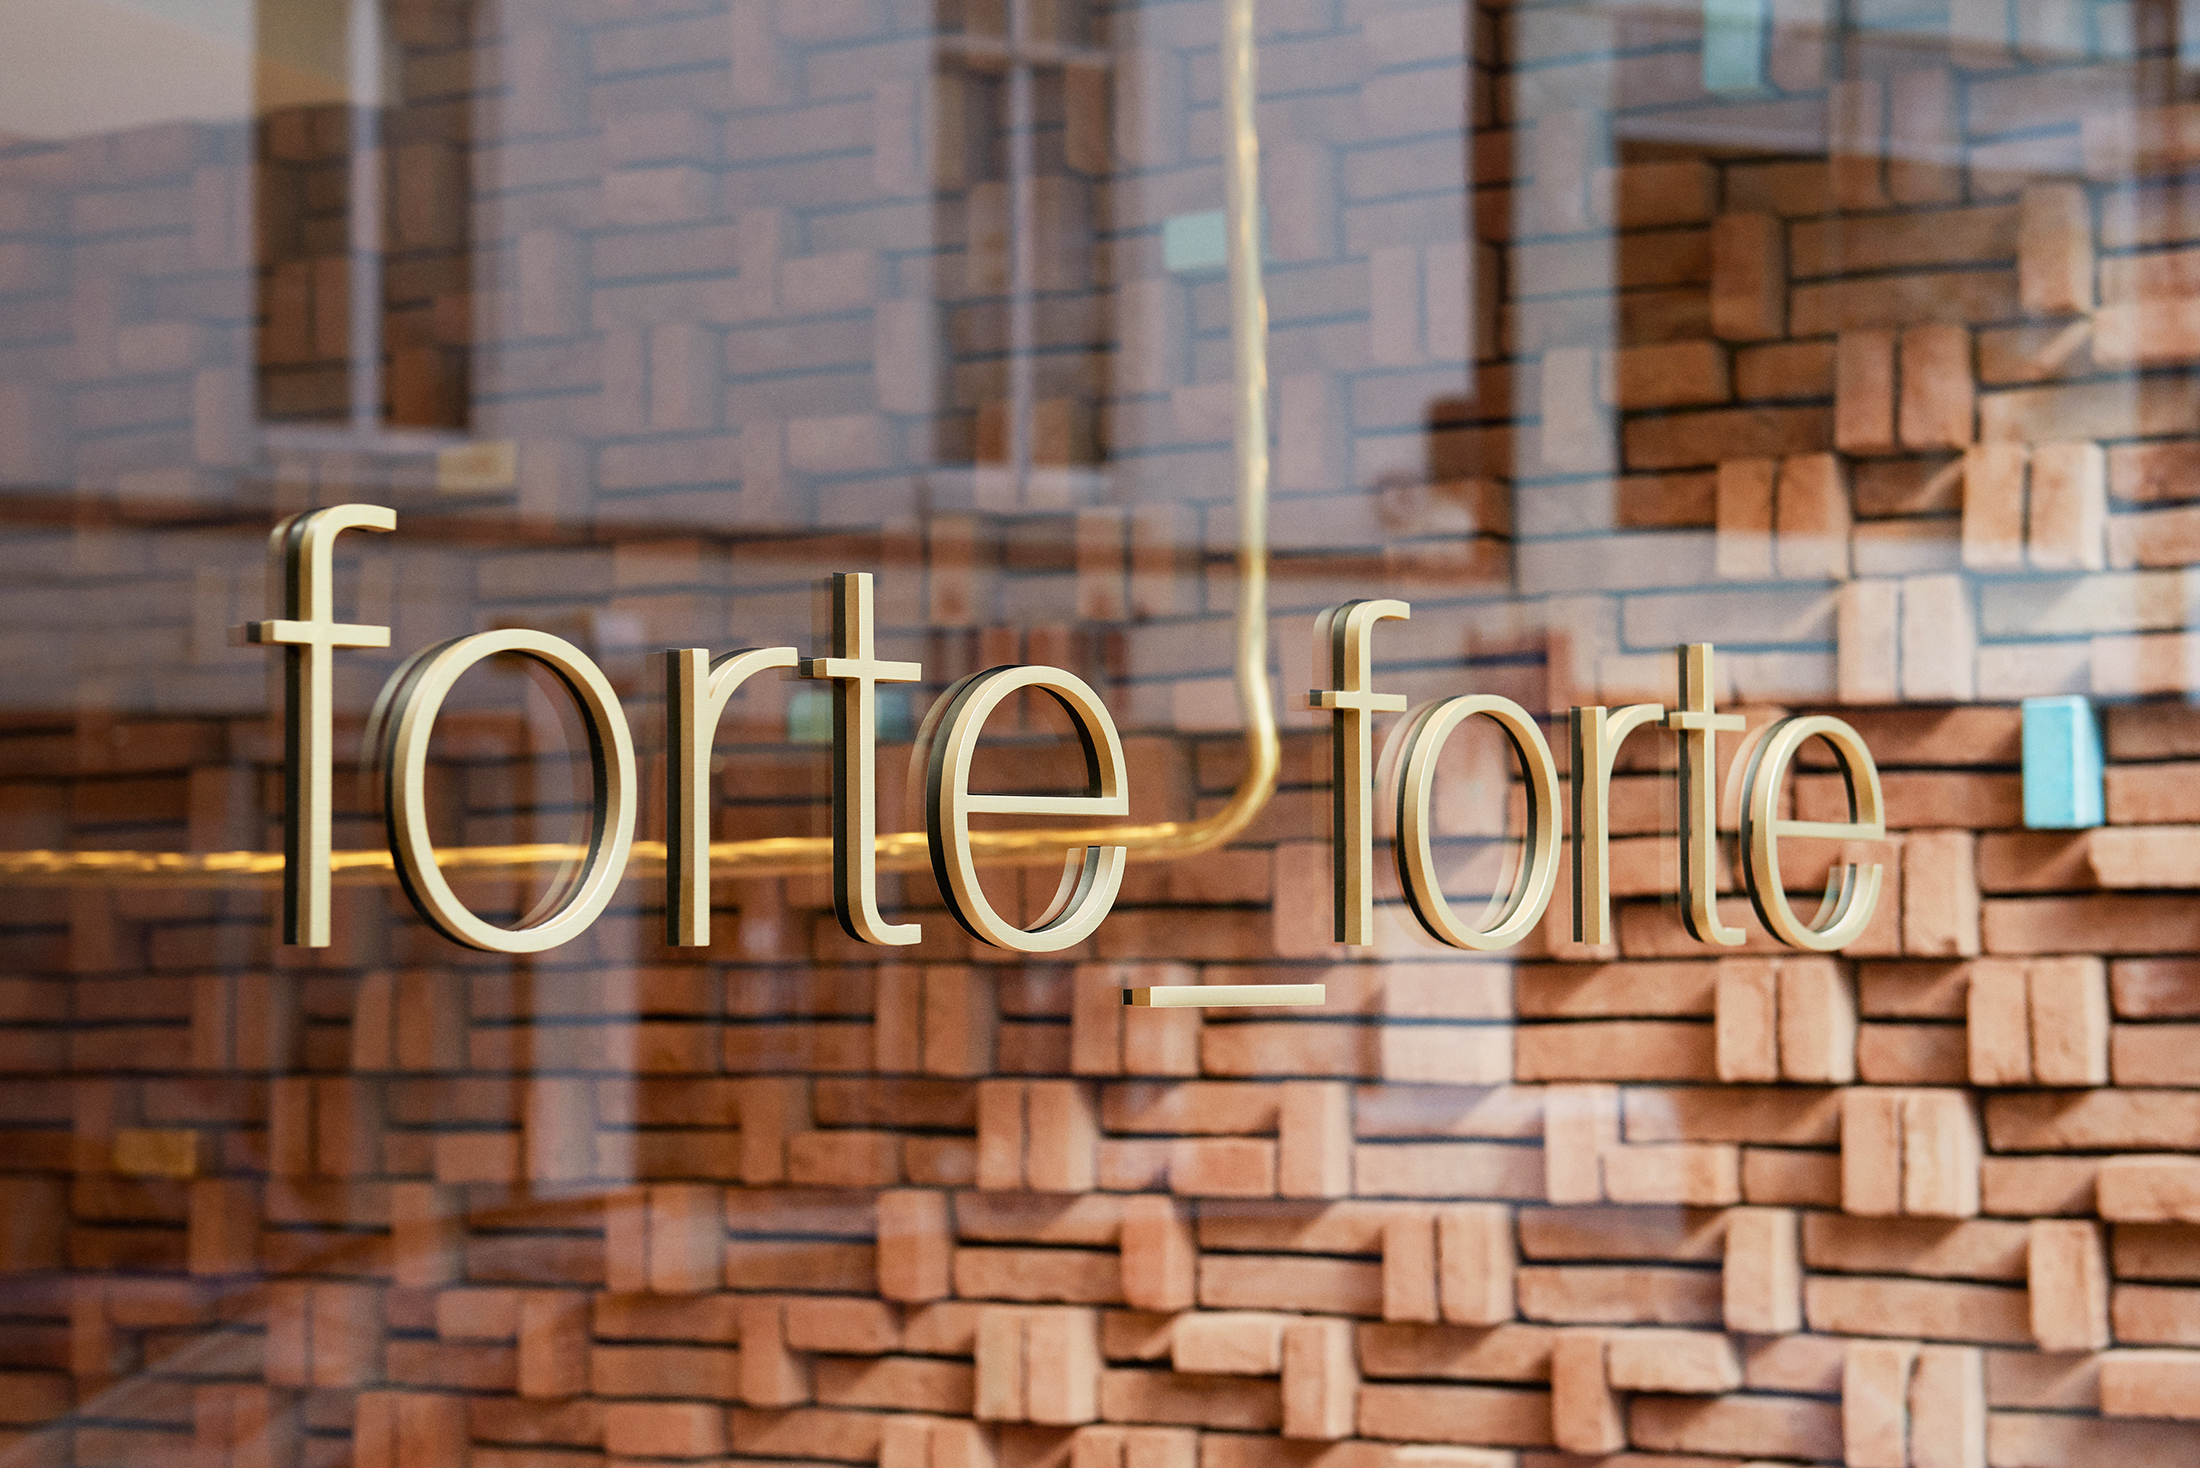 Forte_Forte London Flagship Store